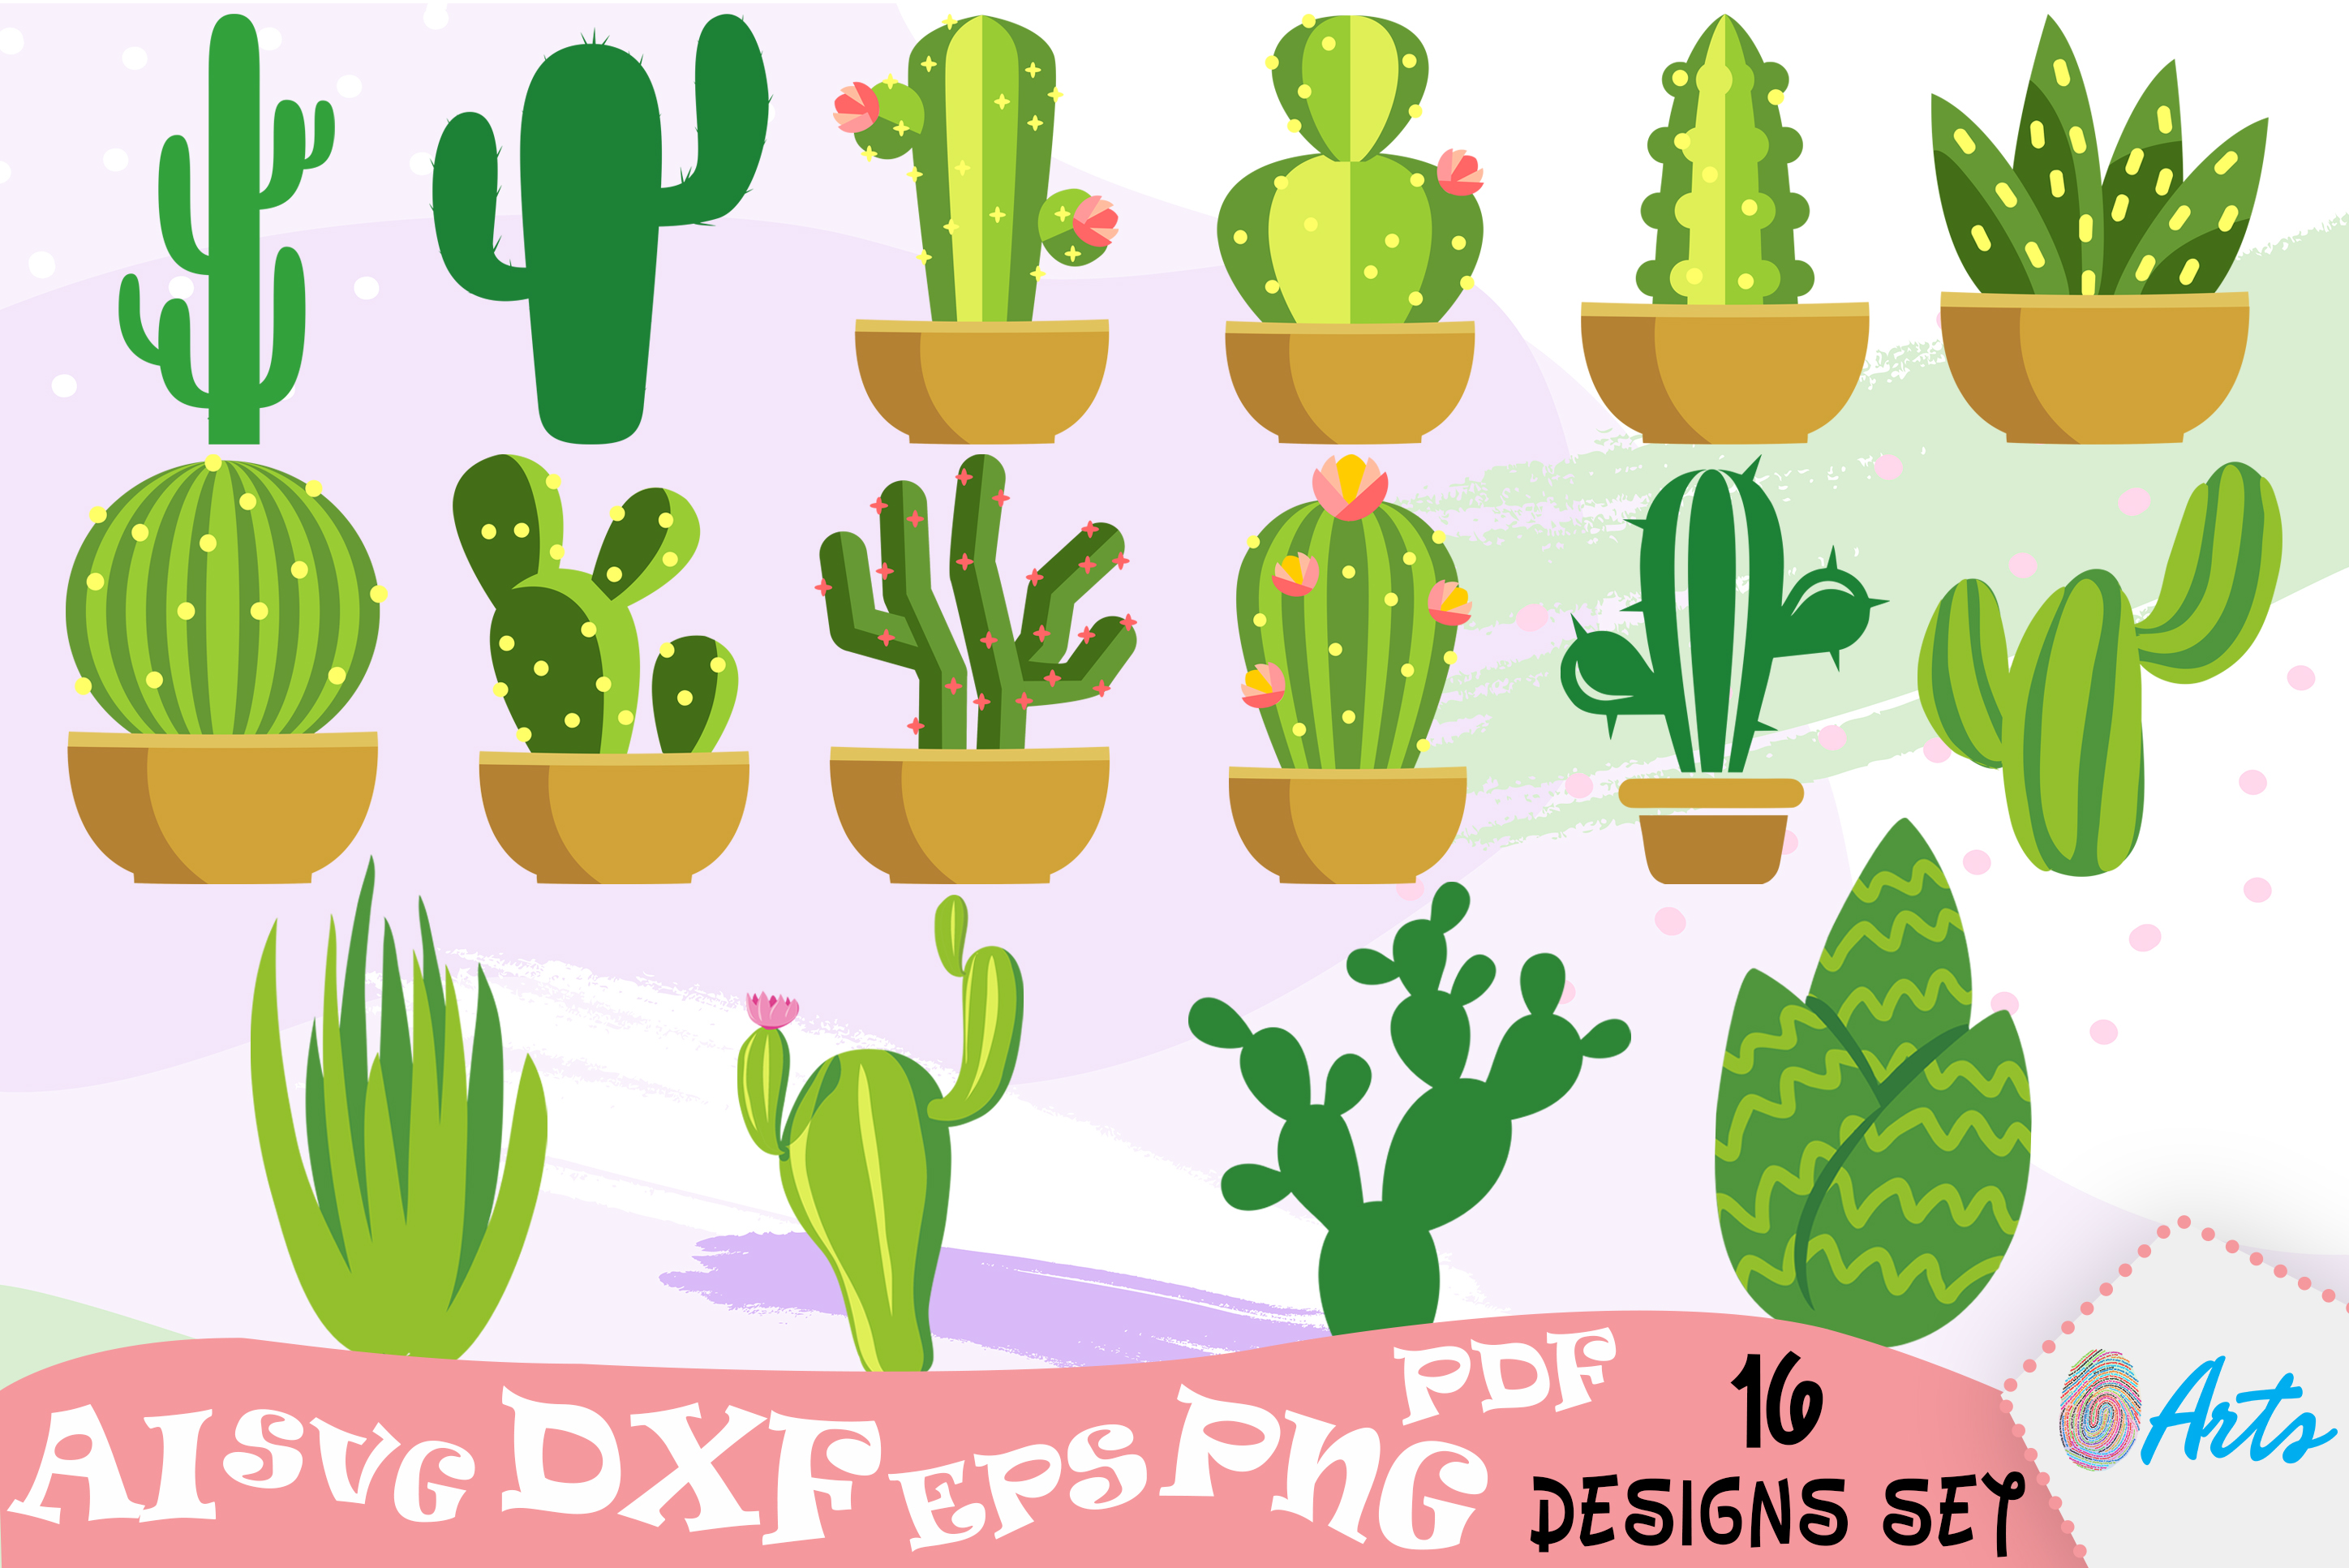 Download Free 16 Cactus Vector Art Designs Graphic By Digitemb Creative Fabrica for Cricut Explore, Silhouette and other cutting machines.